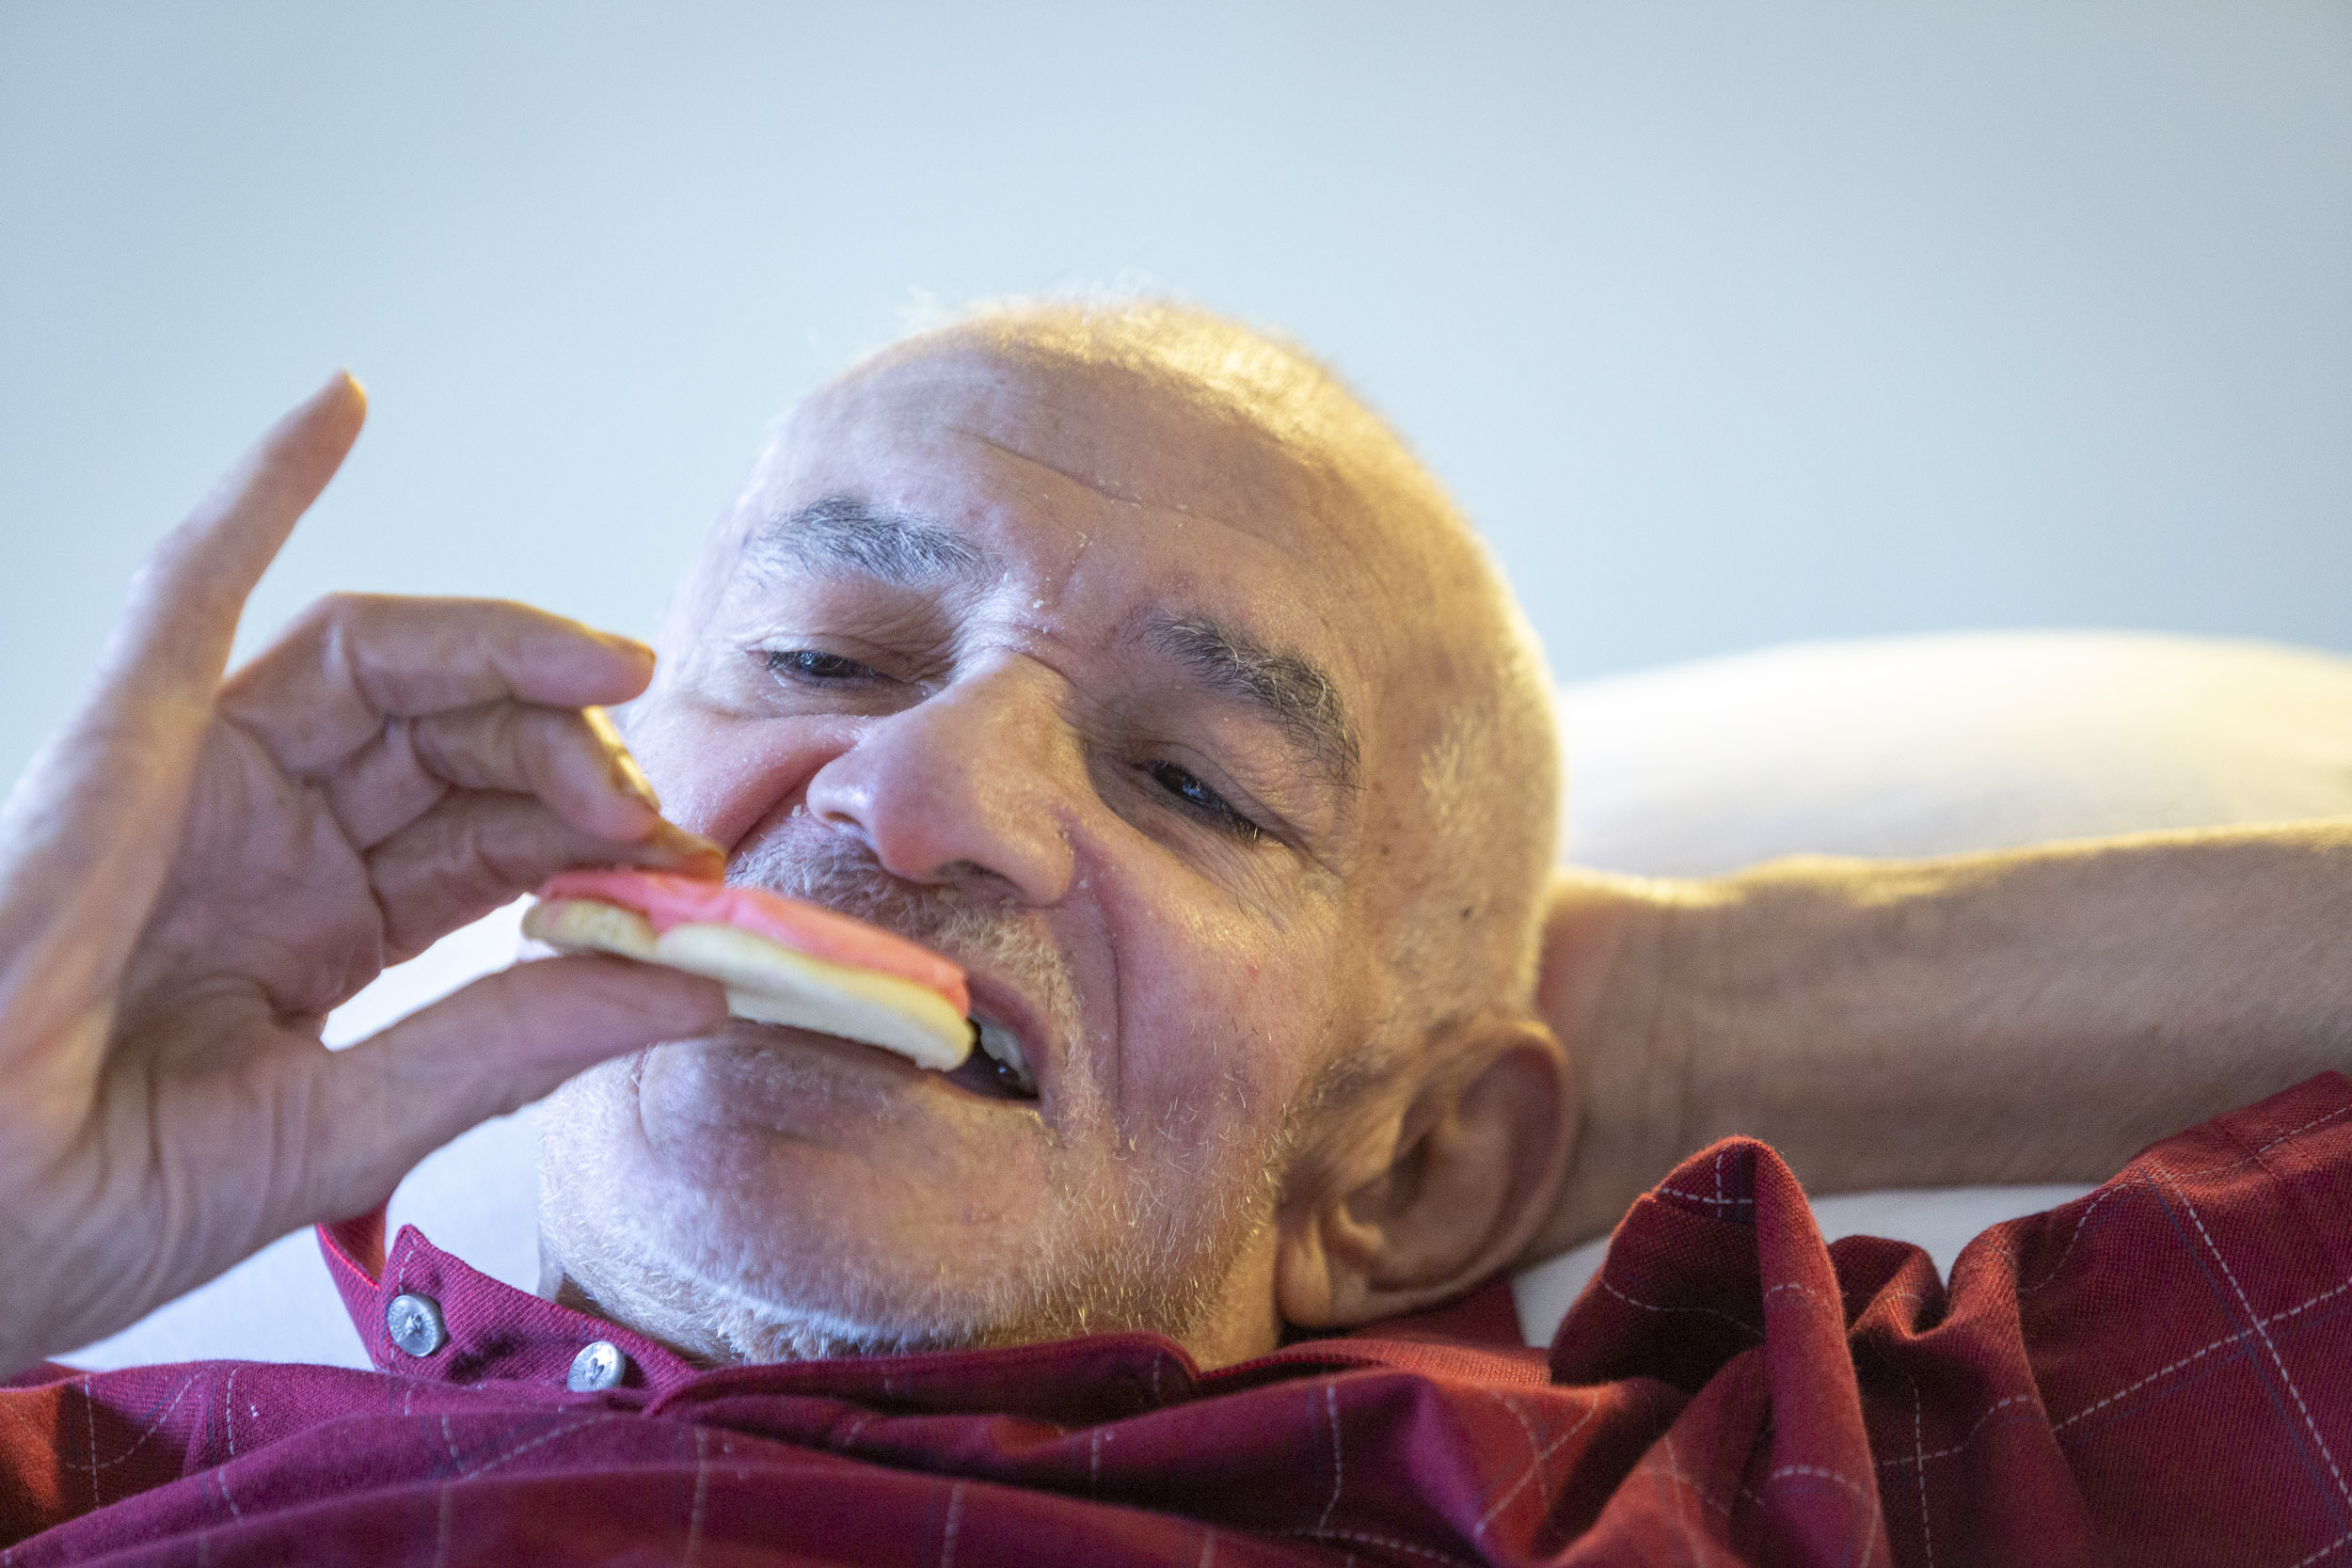 A military veteran takes a bite of a cookie from Cheryl's Cookies at the Armed Forces Retirement Home on Valentine's Day on Thursday, Feb. 14, 2019 in Washington, DC.